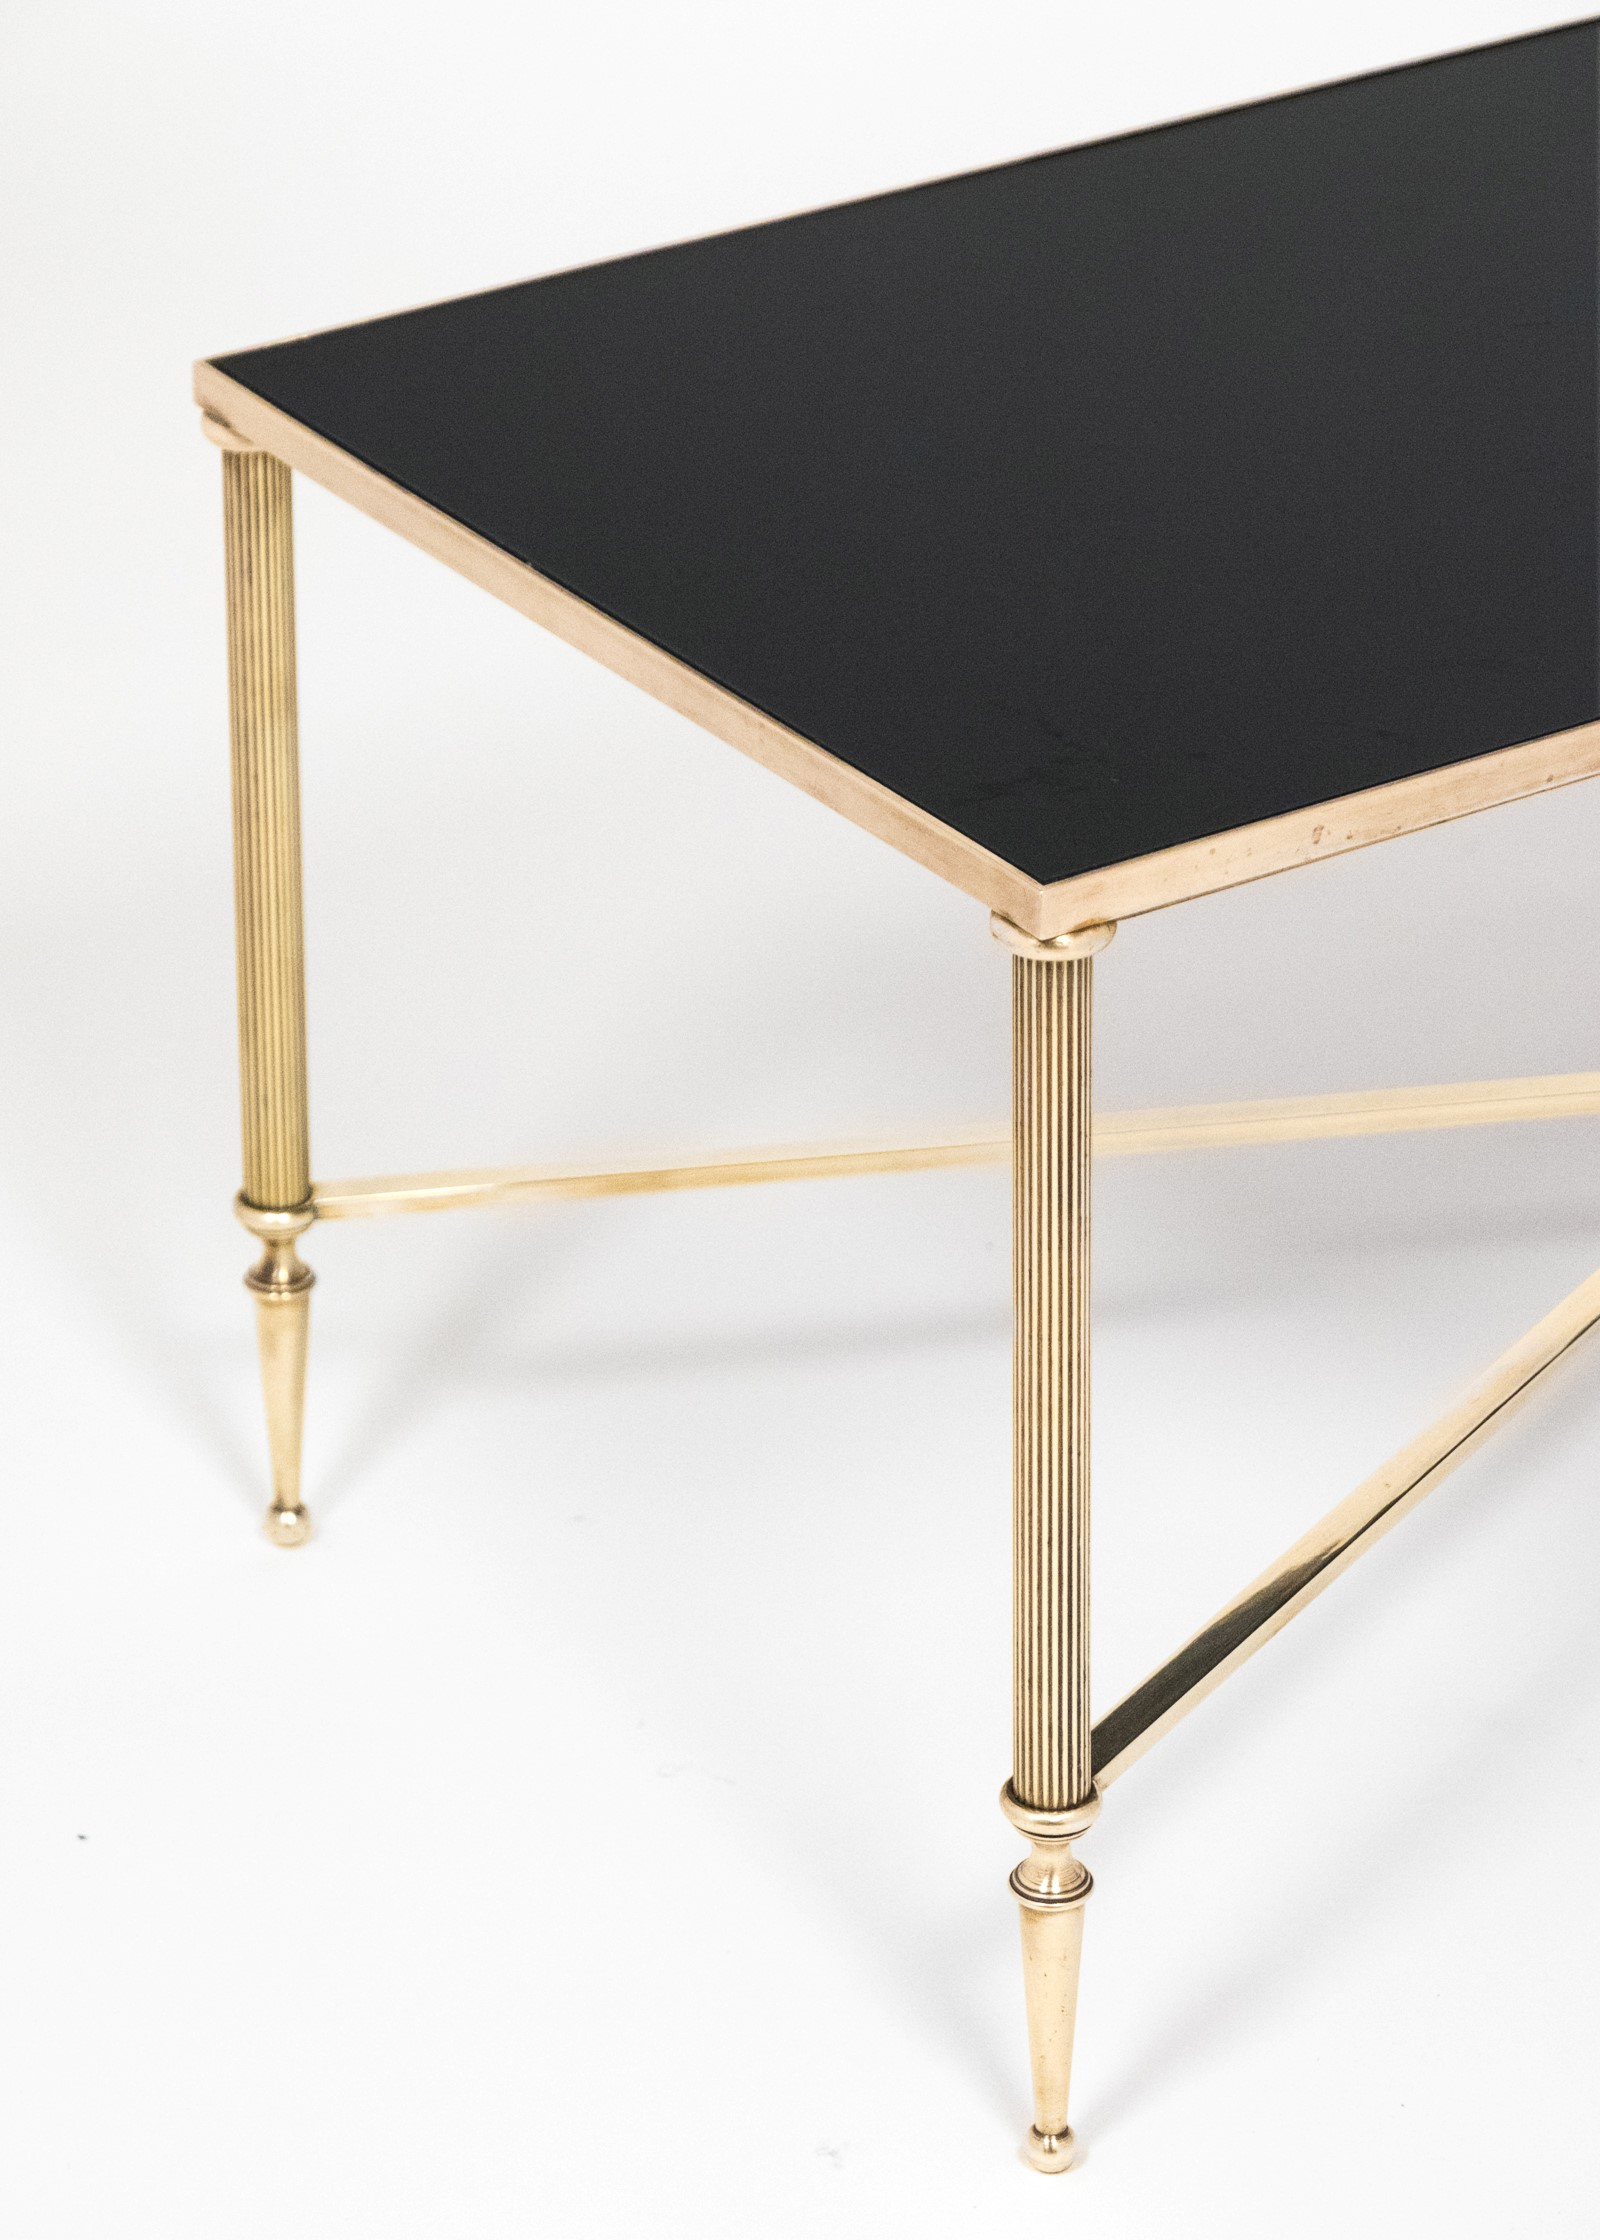 antique table the outrageous cool modern end ideas furniture glass and brass coffee full wallpaper golden black rectangle designs for living room decor kirklands accent tables